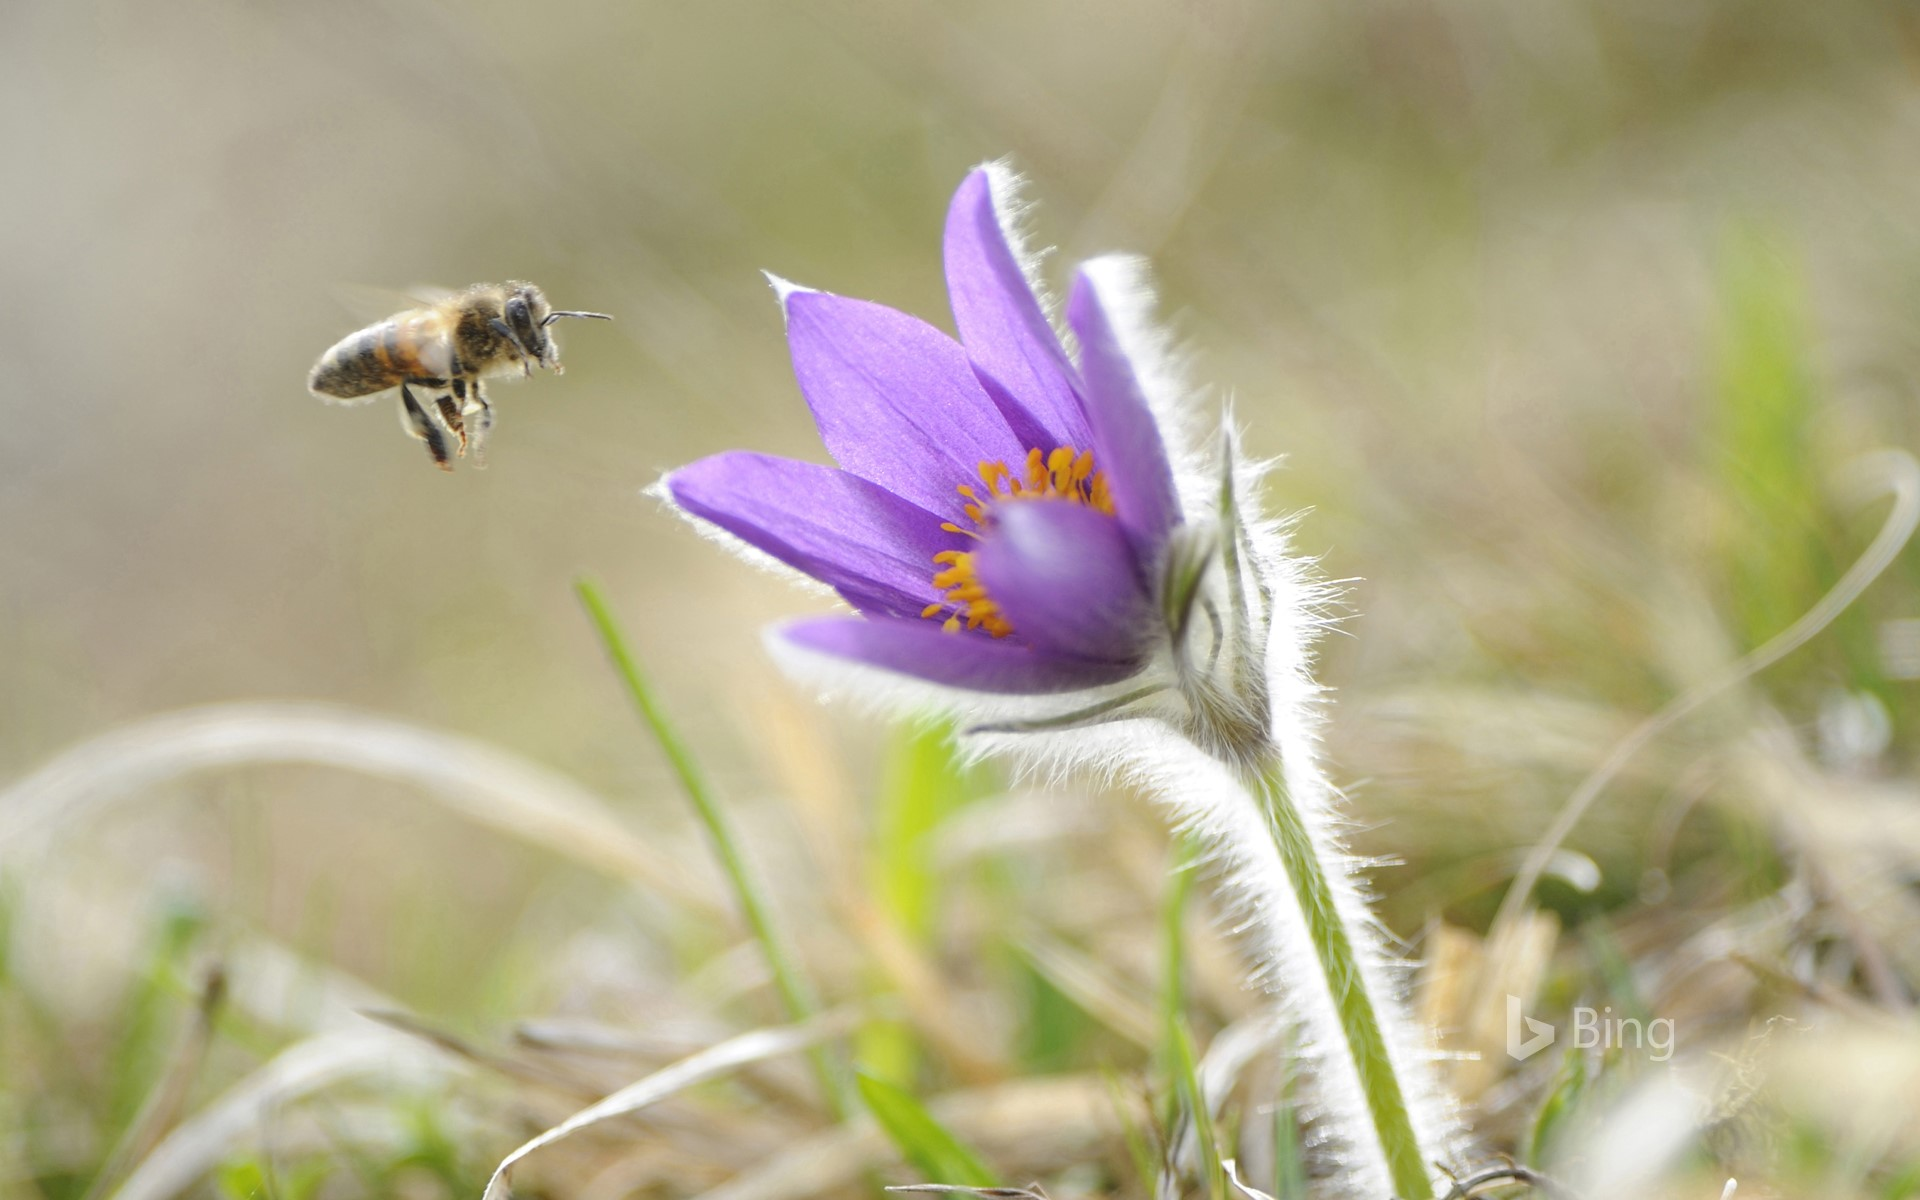 Honeybee approaching the flower of a common pasque flower (Pulsatilla vulgaris), Upper Palatinate, Bavaria, Germany